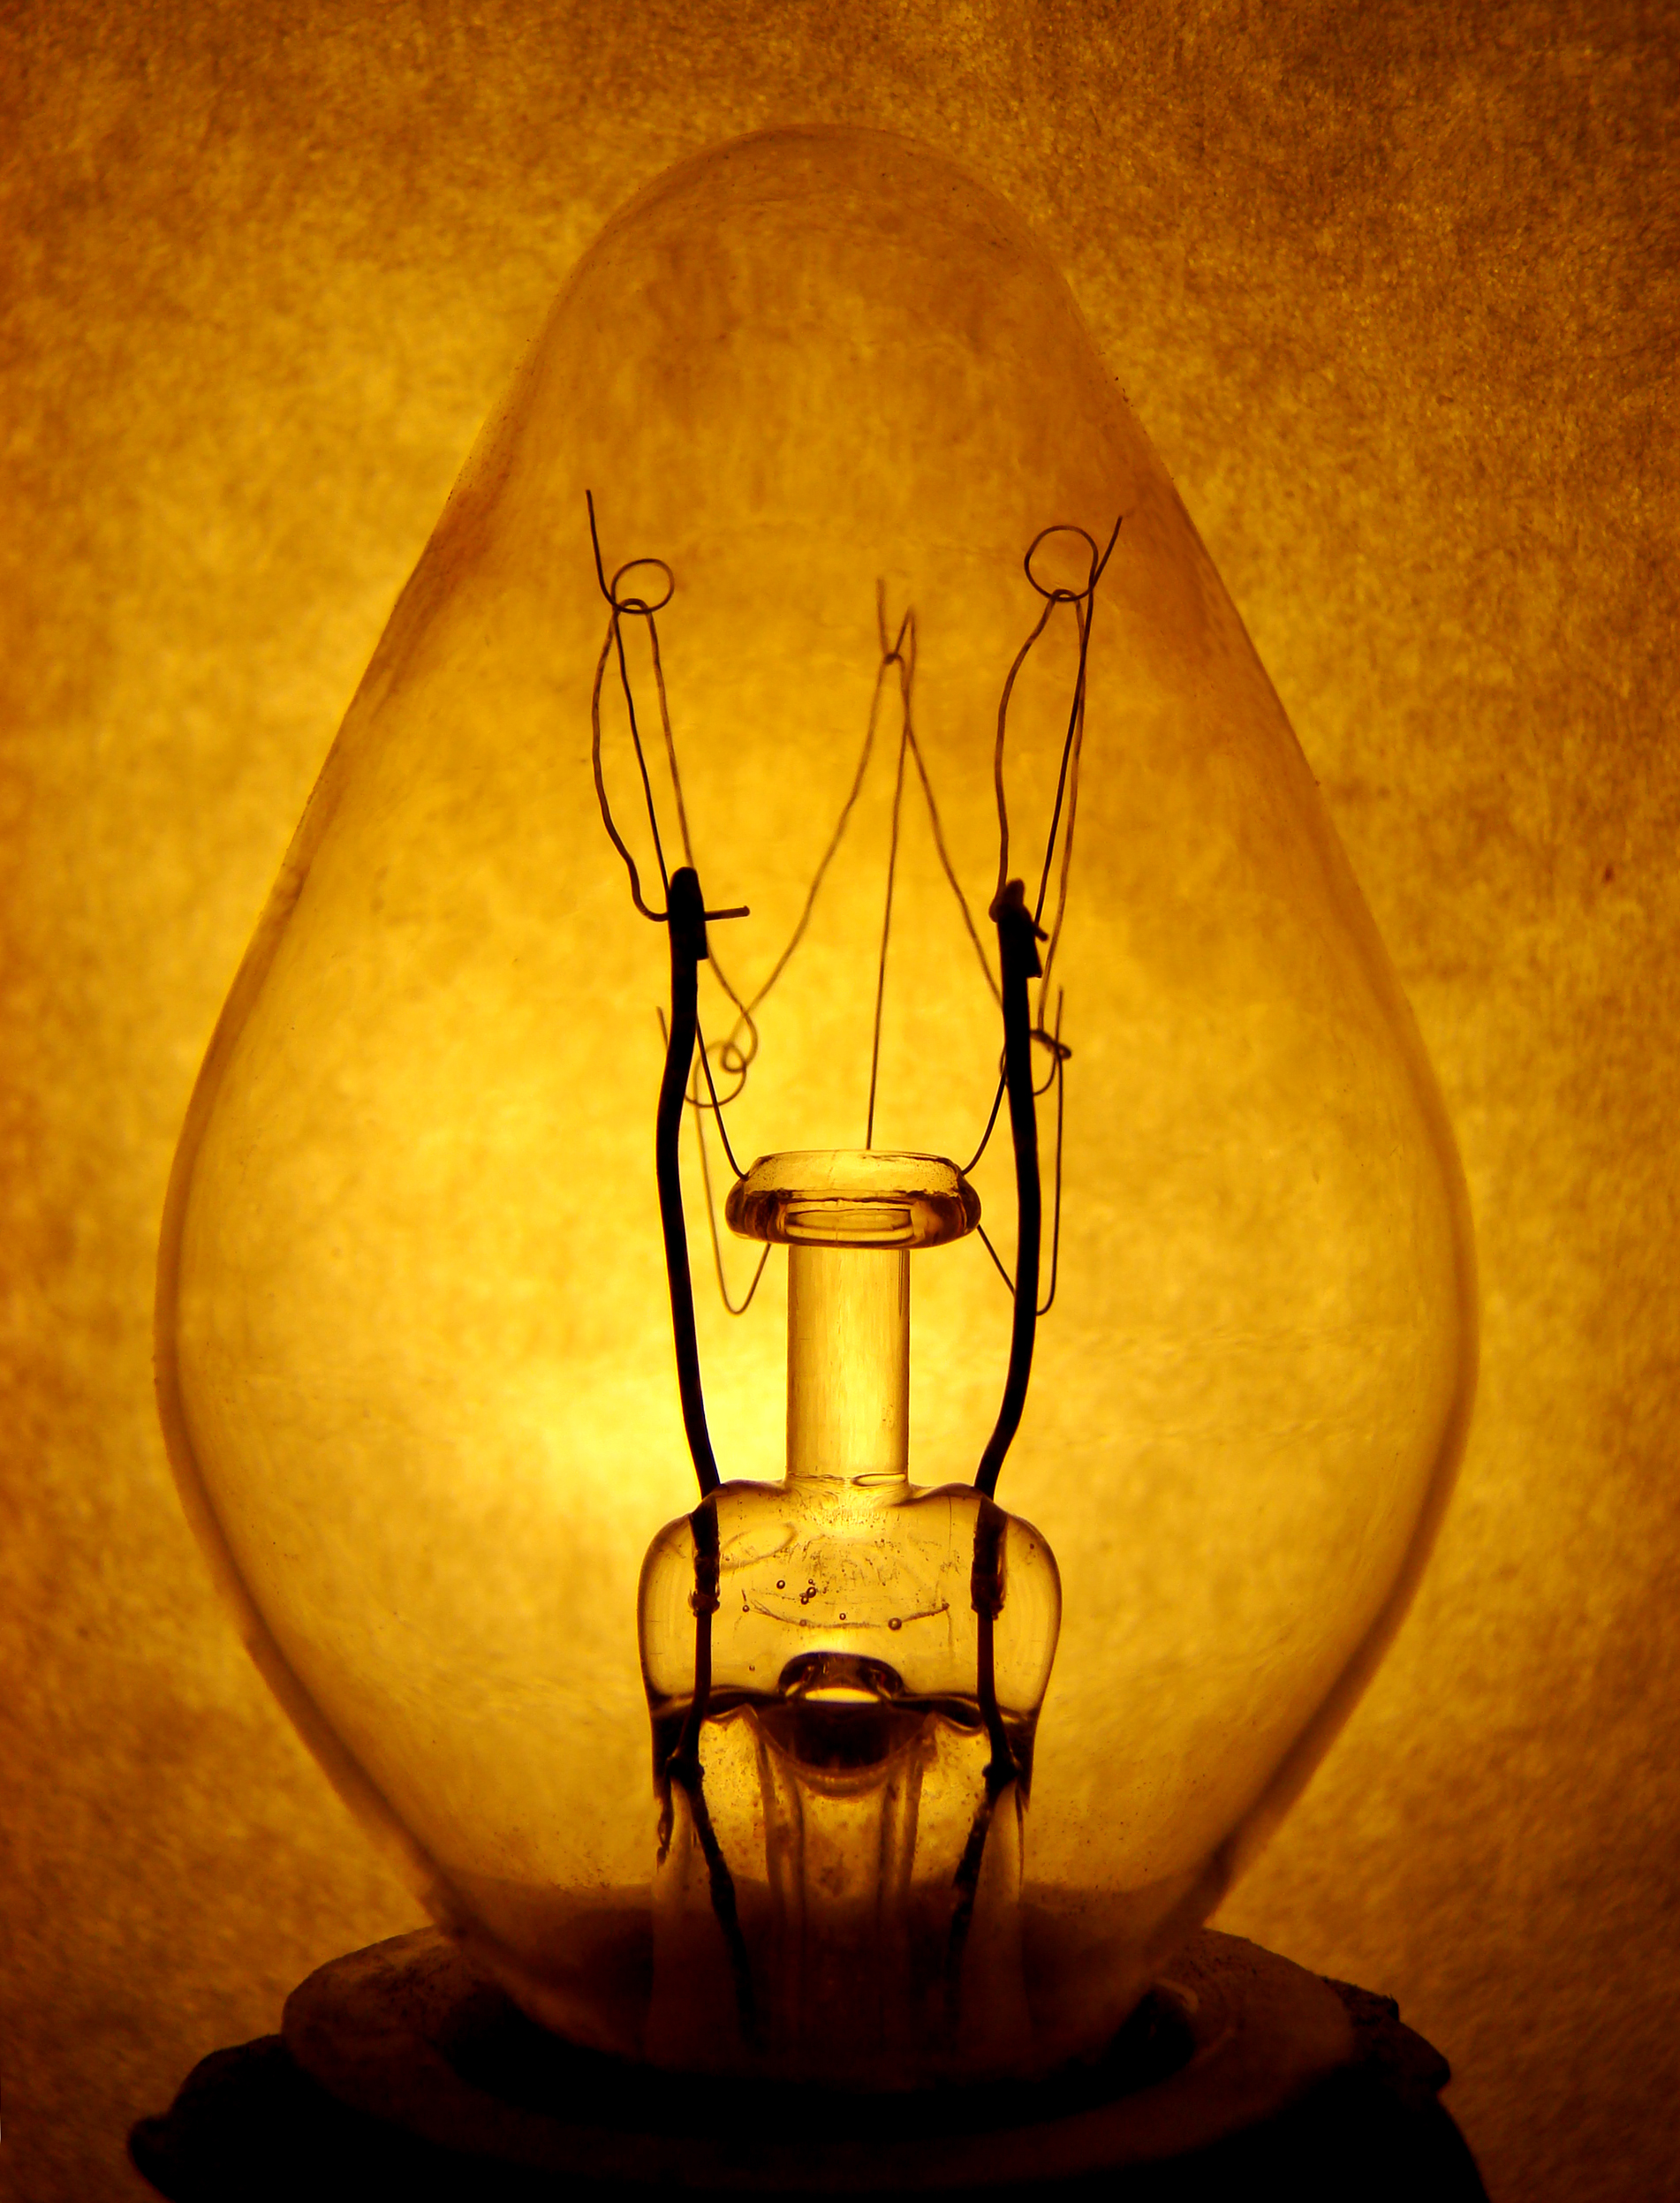 lightbulb Photographing Silhouettes